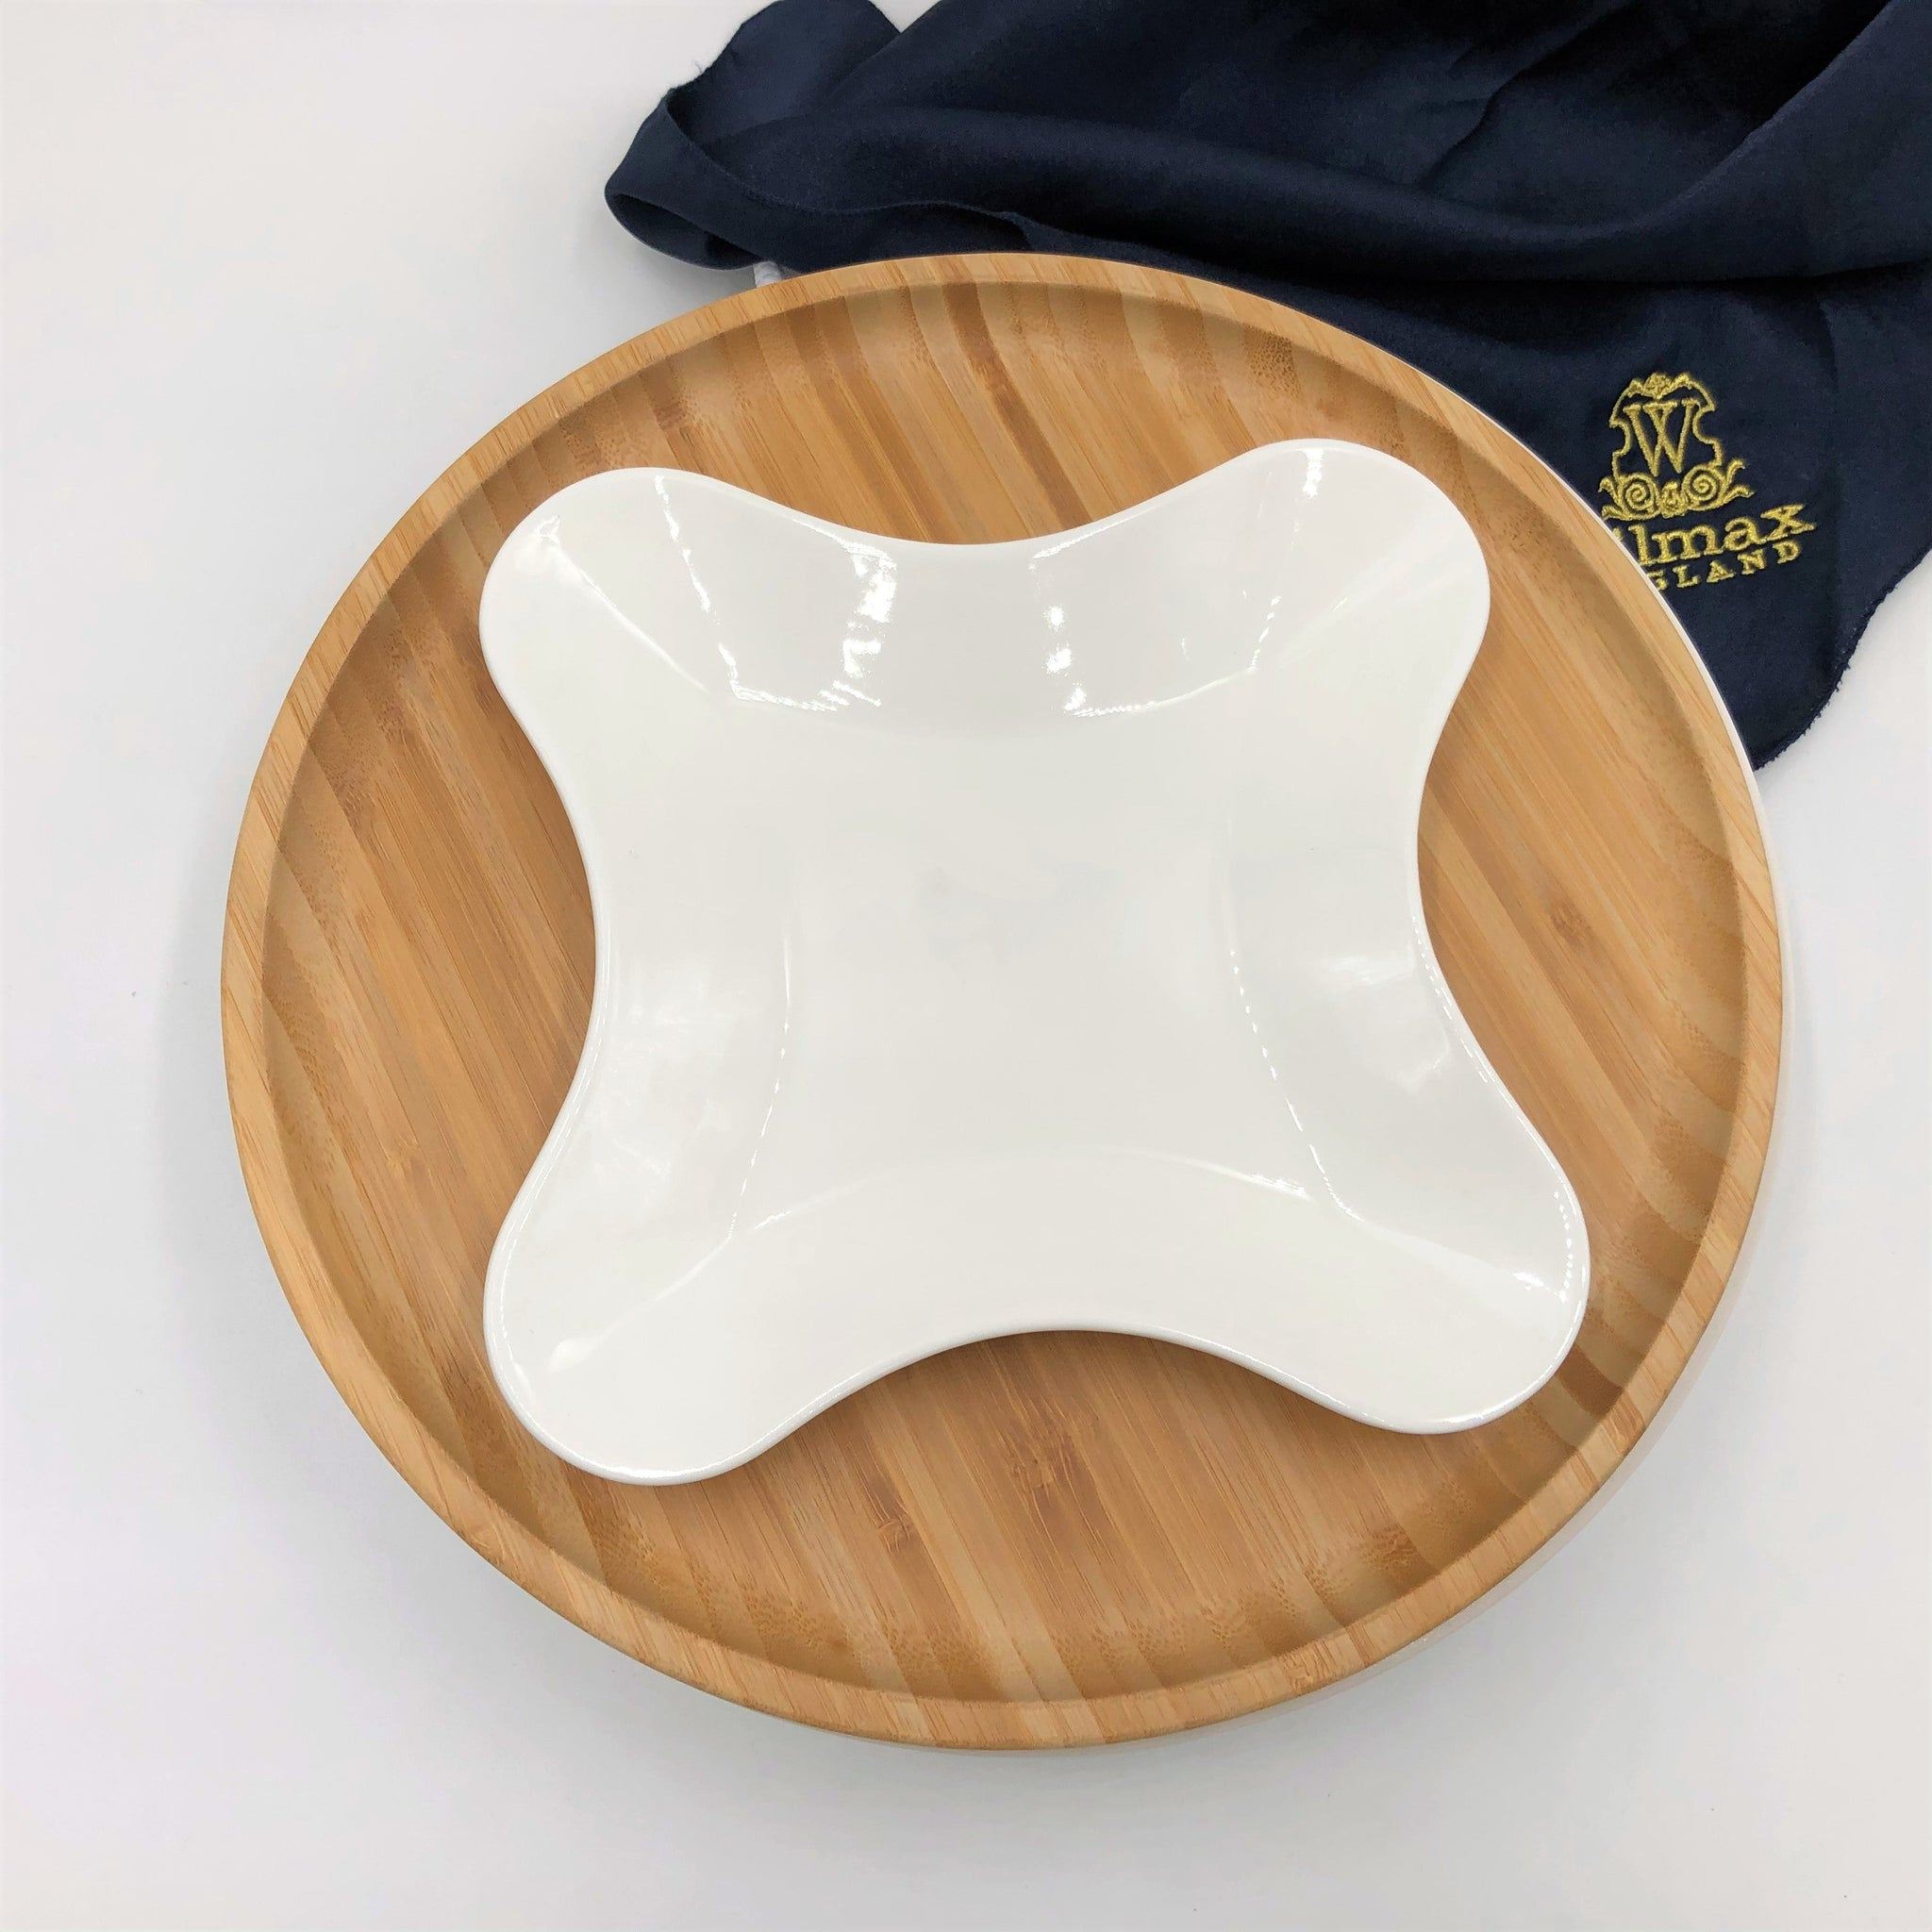 Bamboo And Fine Porcelain 4 Sided Star Dish/plate Setting WL-555069